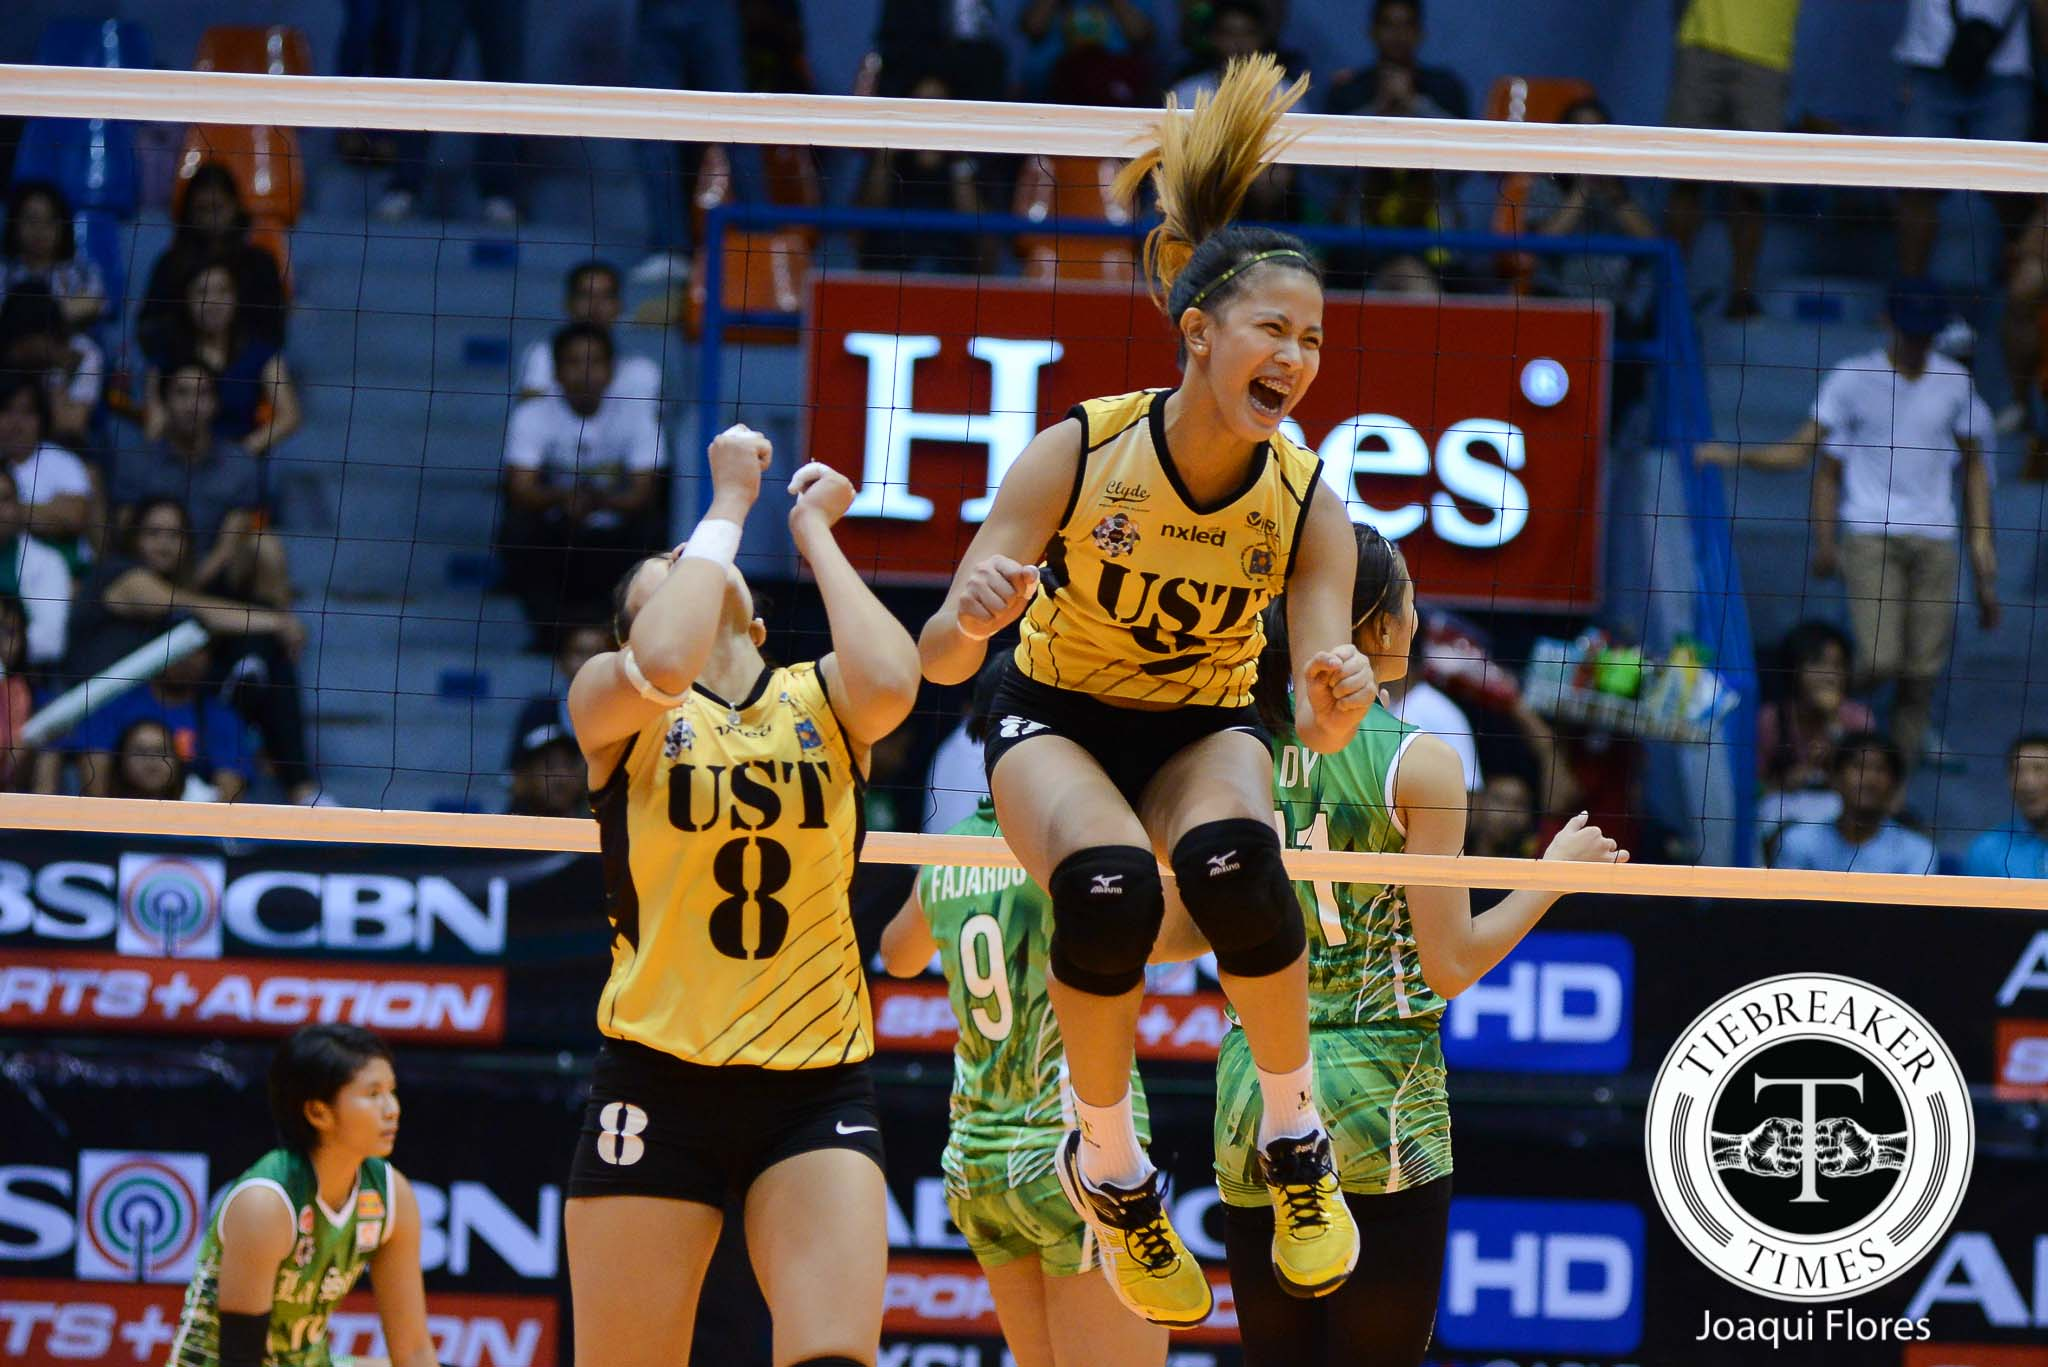 Tiebreaker Times Laure getting right feel for leadership role News UAAP UST Volleyball  UST Women's Volleyball UAAP Season 78 Women's Volleyball UAAP Season 78 EJ Laure